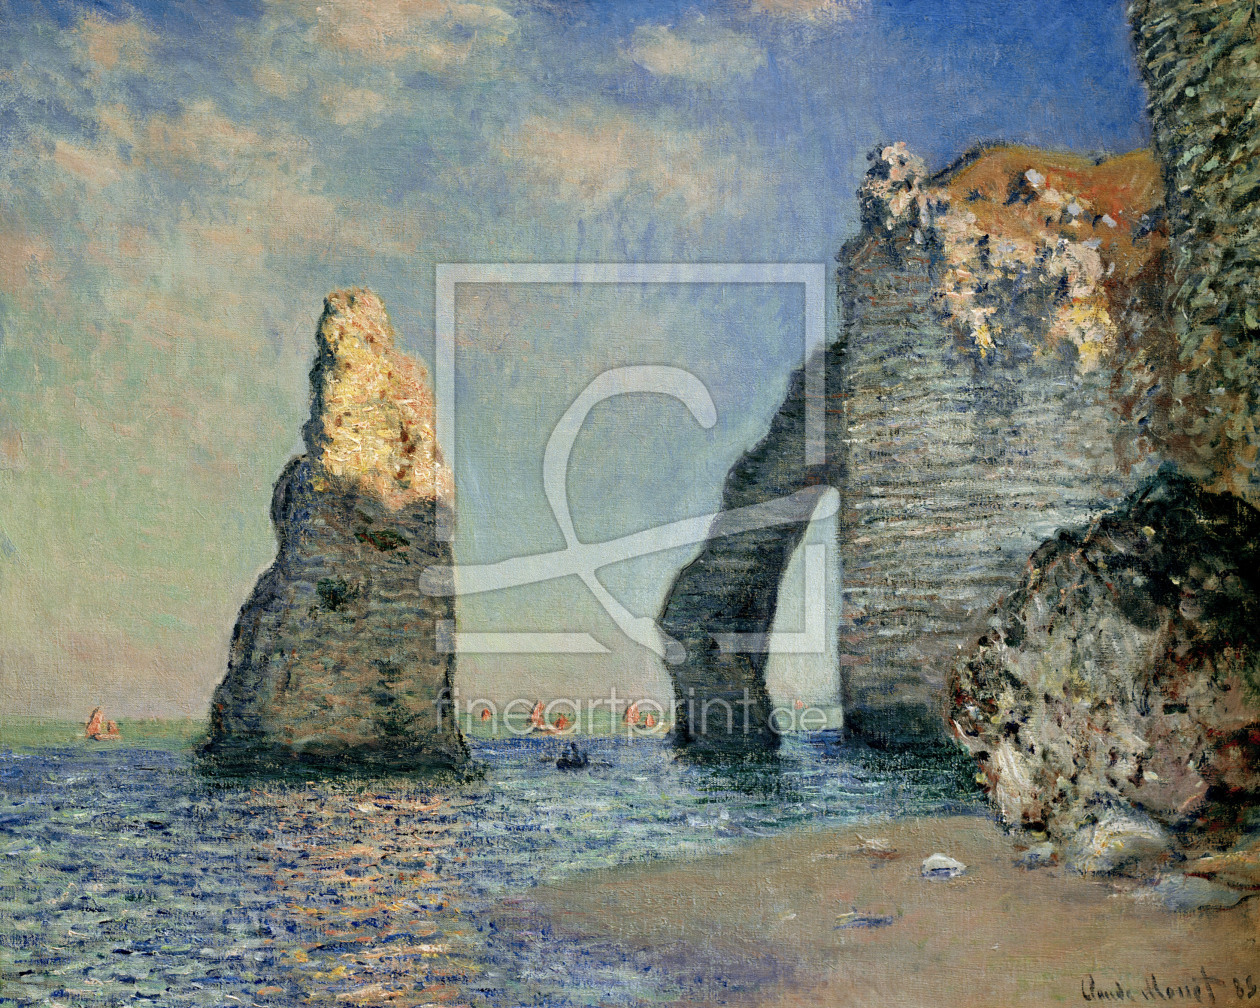 Bild-Nr.: 30003932 Monet / The rock face of Aval / 1885 erstellt von Monet, Claude